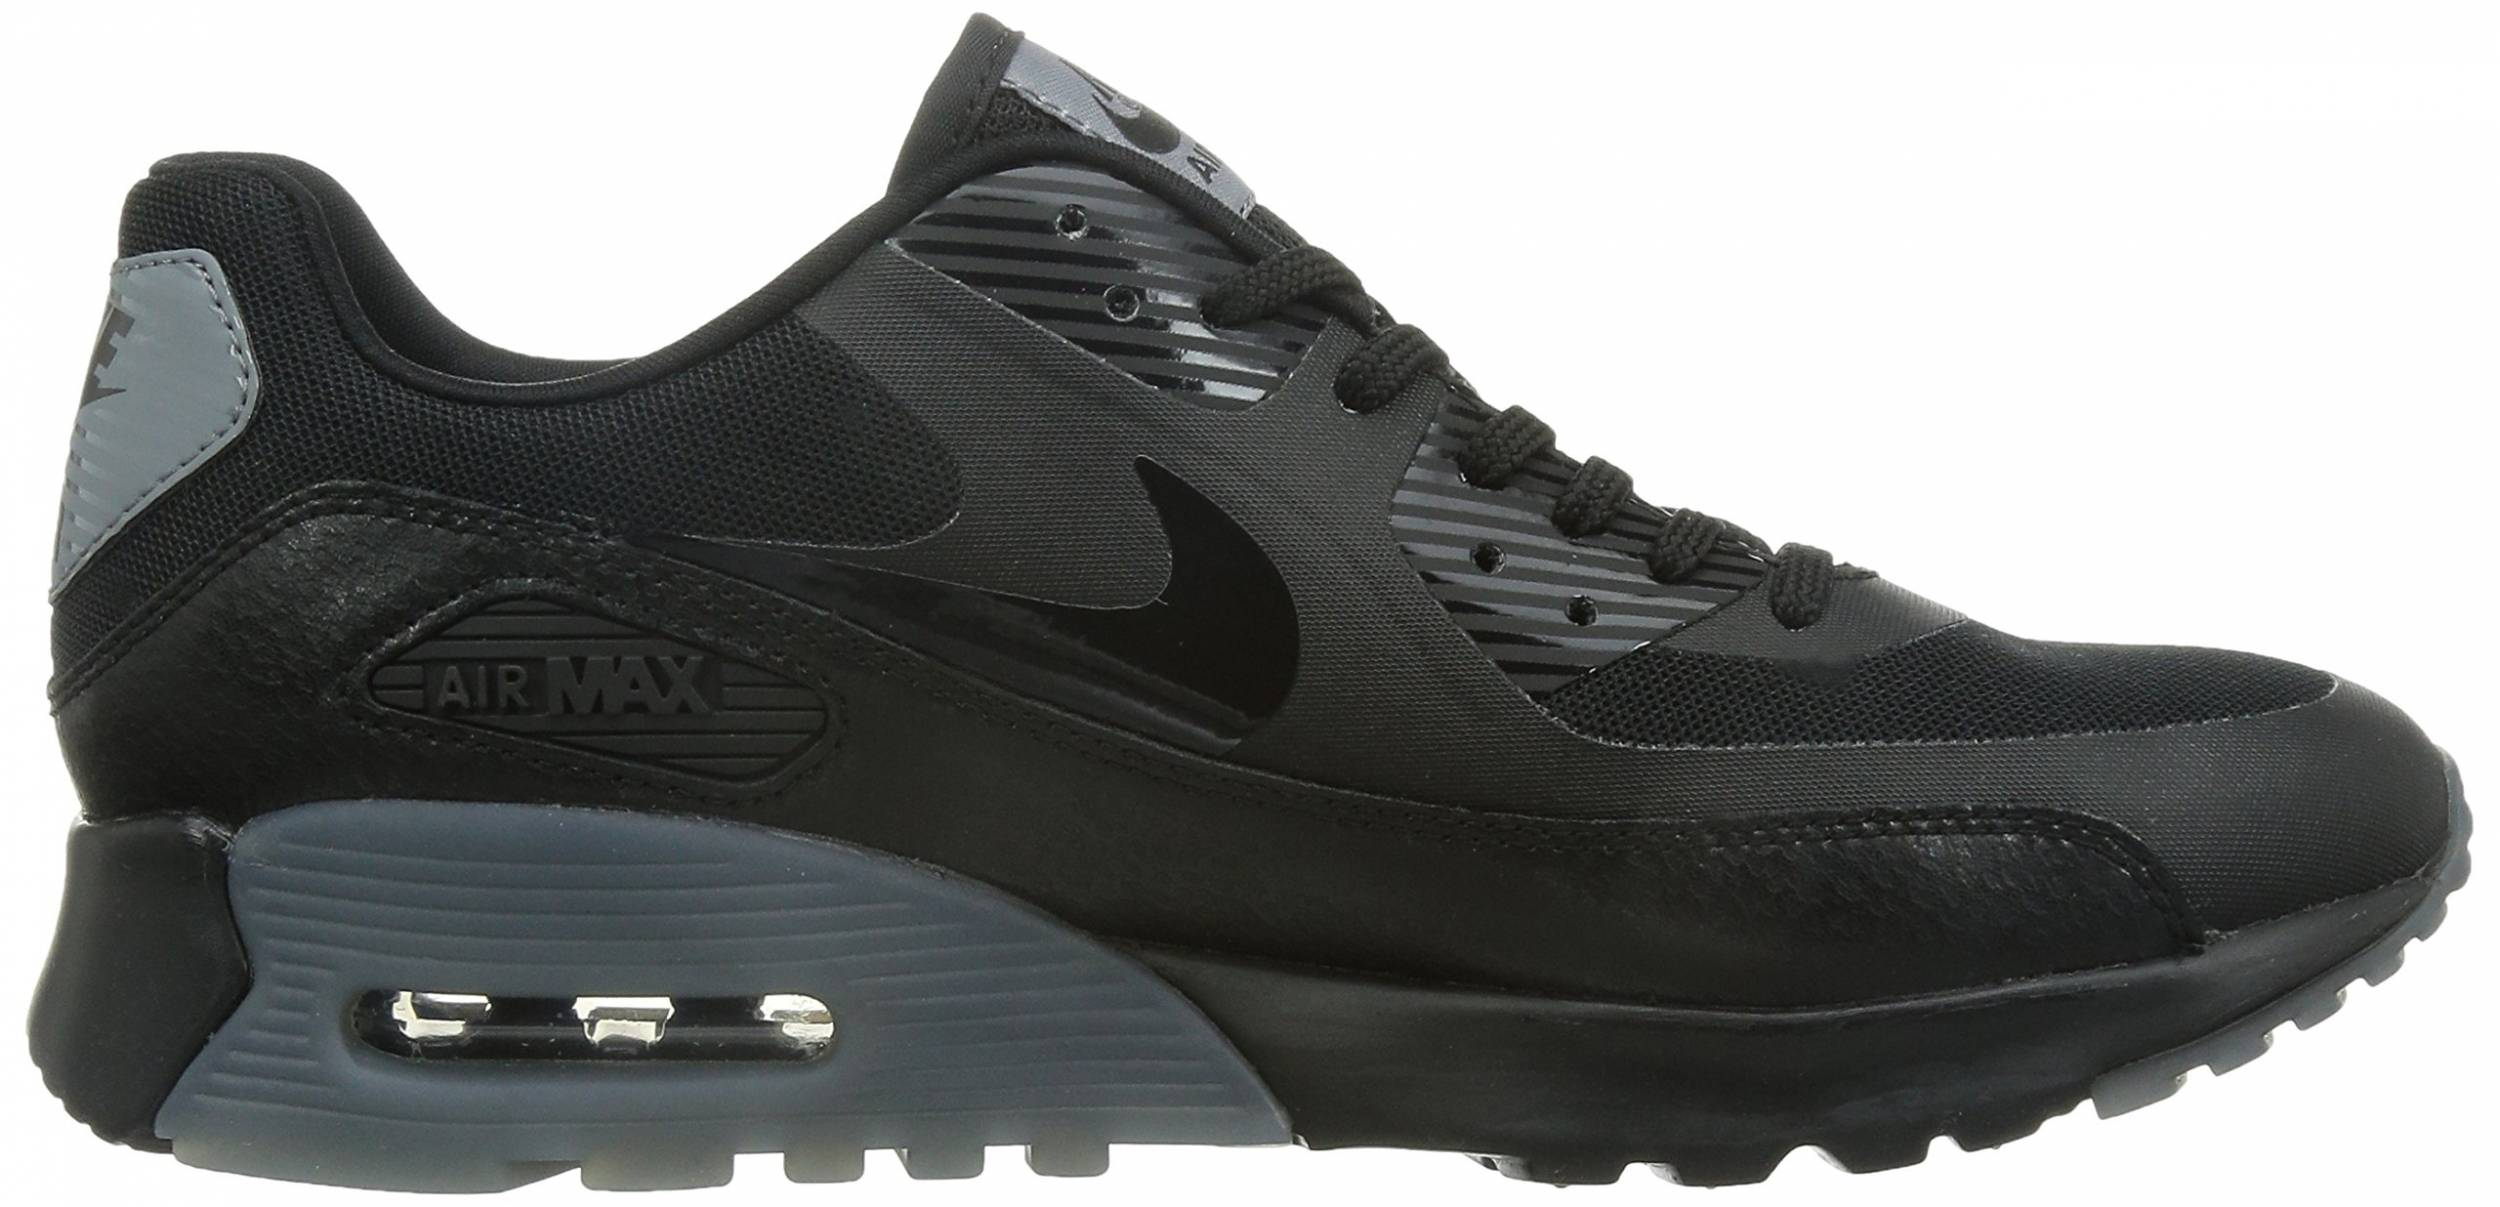 12 Reasons to/NOT to Buy Nike Air Max 90 Ultra Essential (Sep 2021 ...